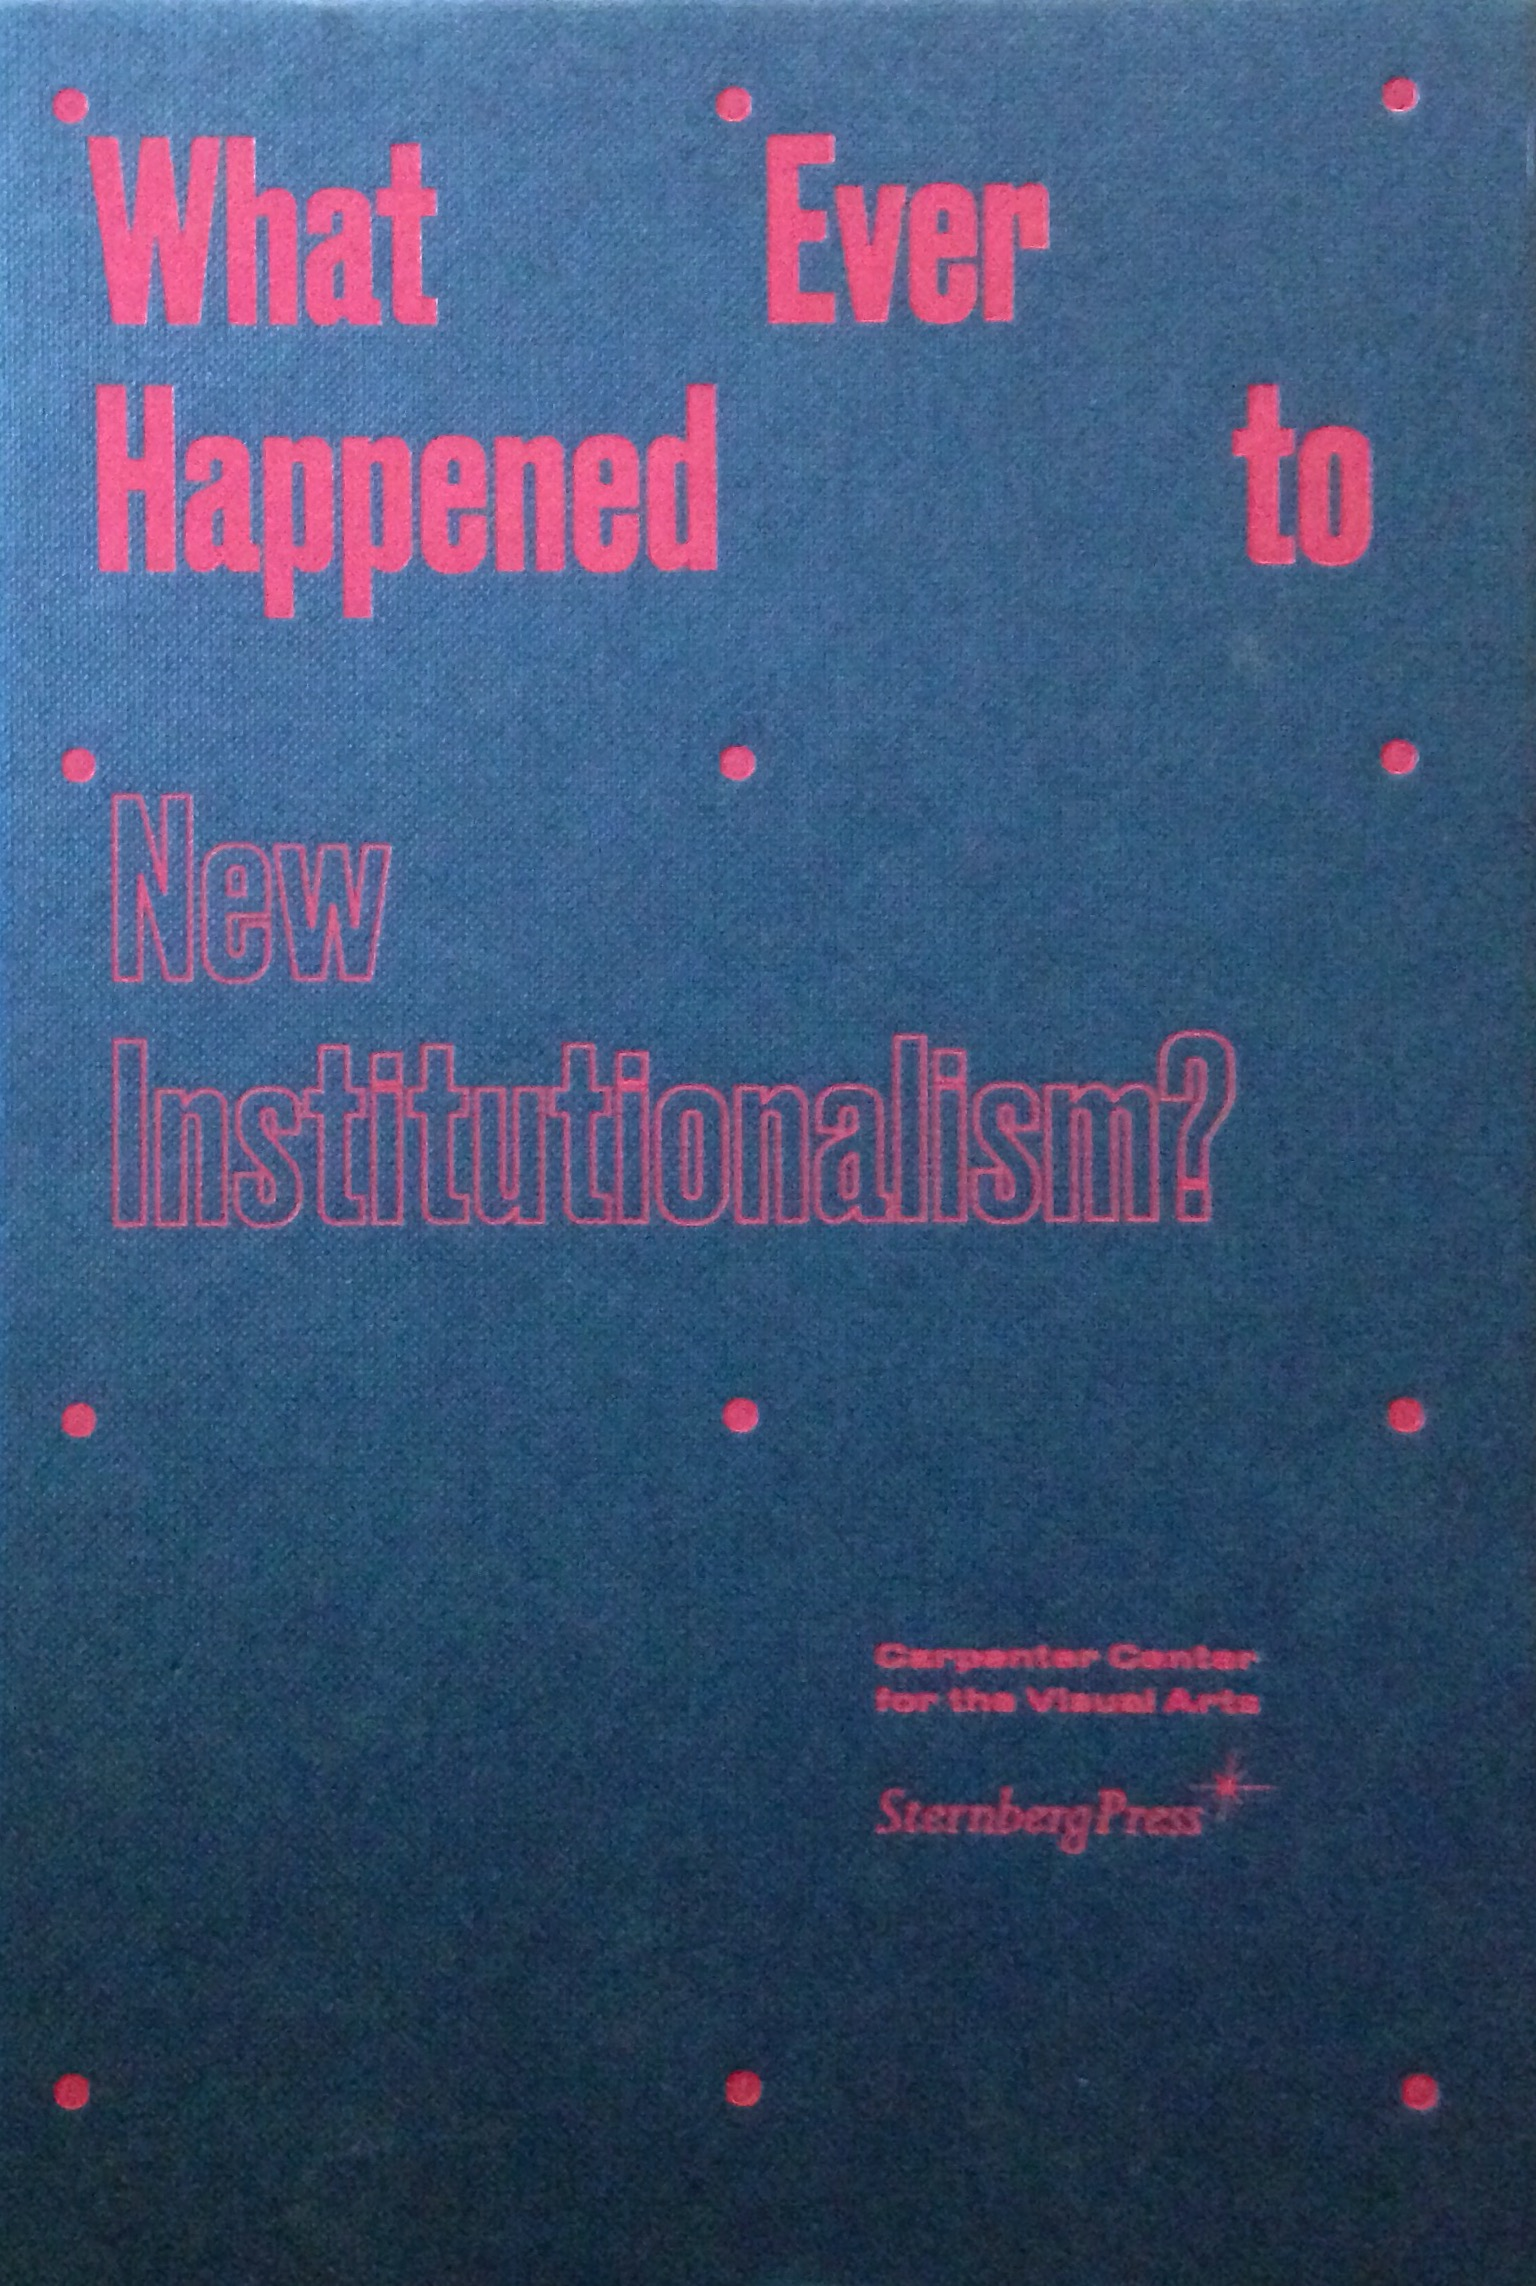 What Ever Happened to New Institutionalism.JPG